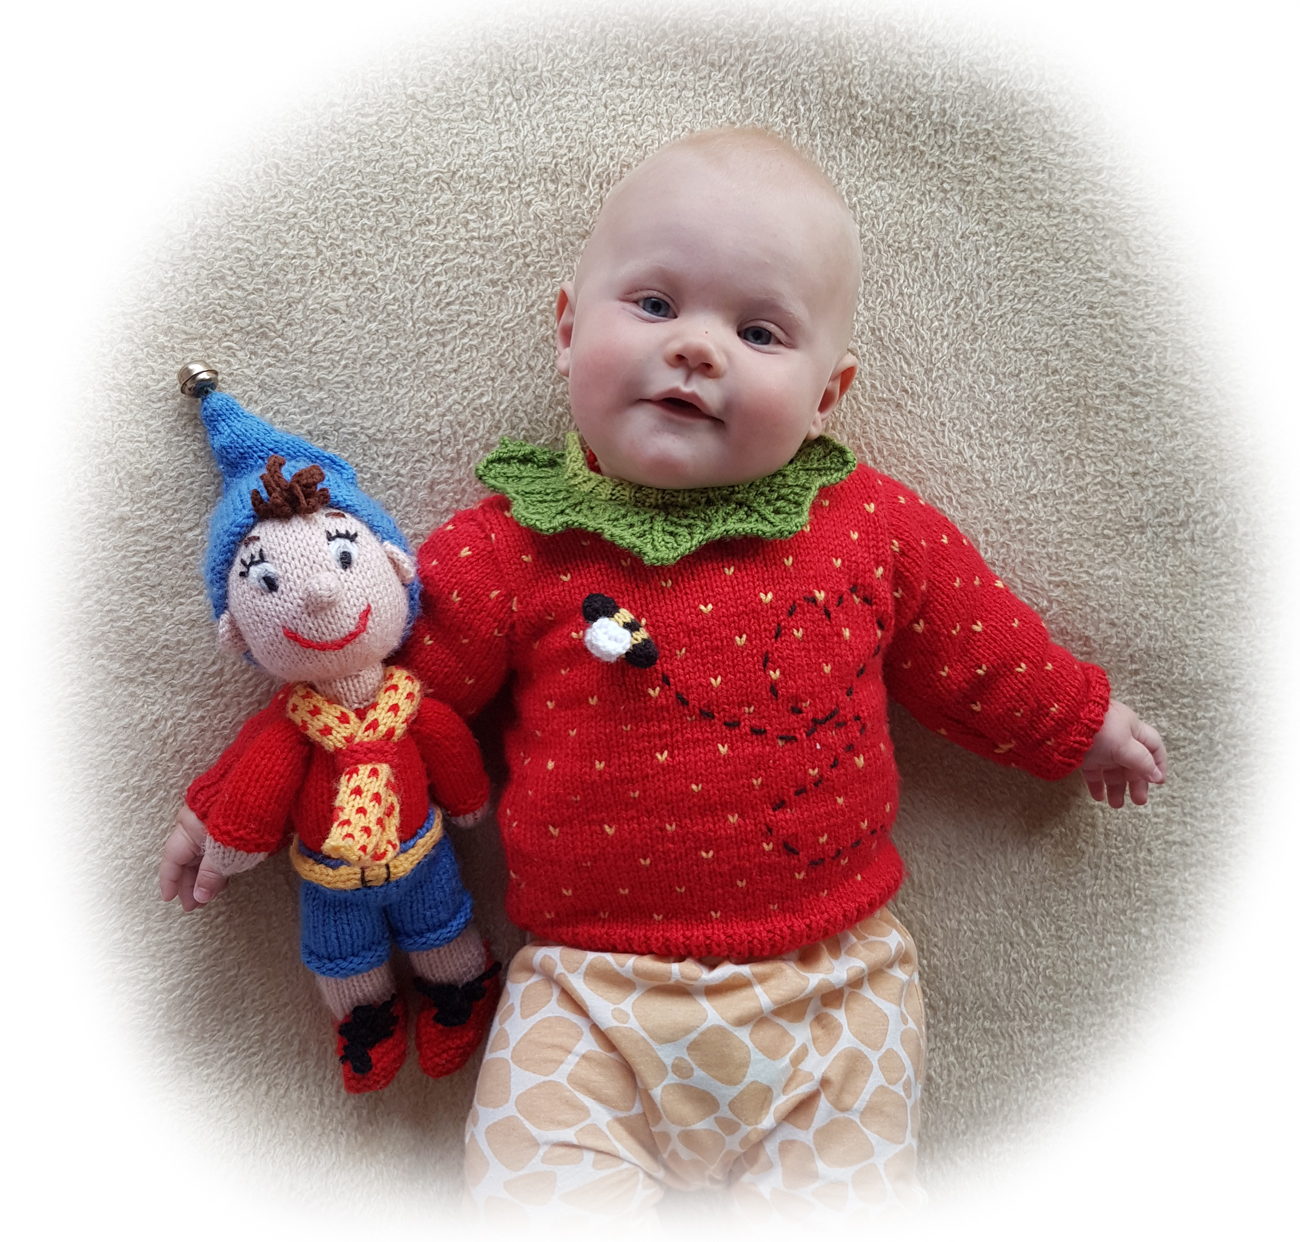 Noddy man knitting pattern image